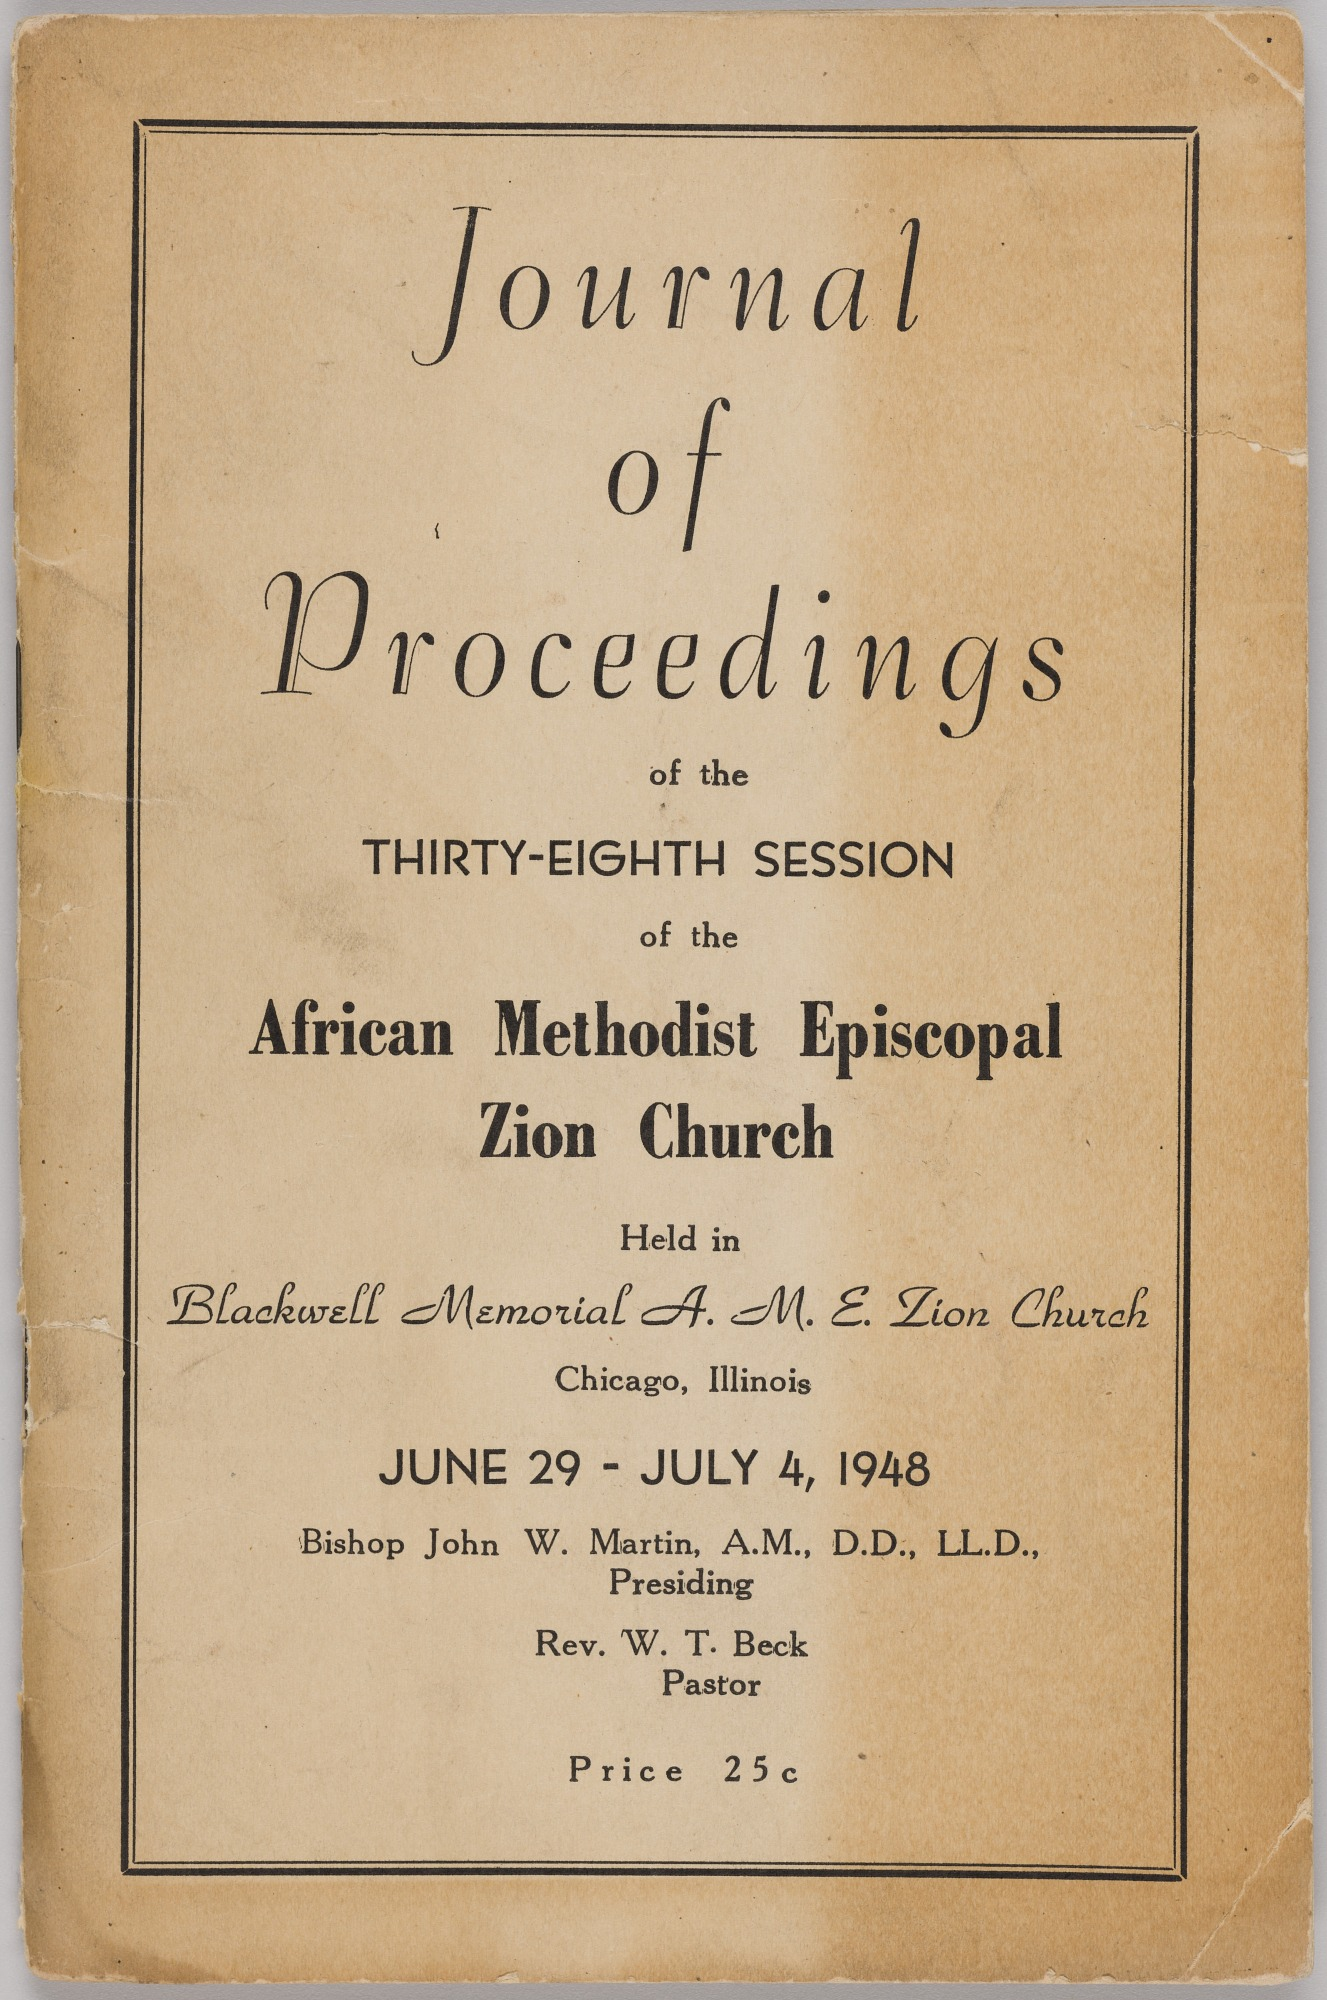 Image for Journal of Proceedings of the Thirty-Eighth Session of the African Methodist Episcopal Zion Church